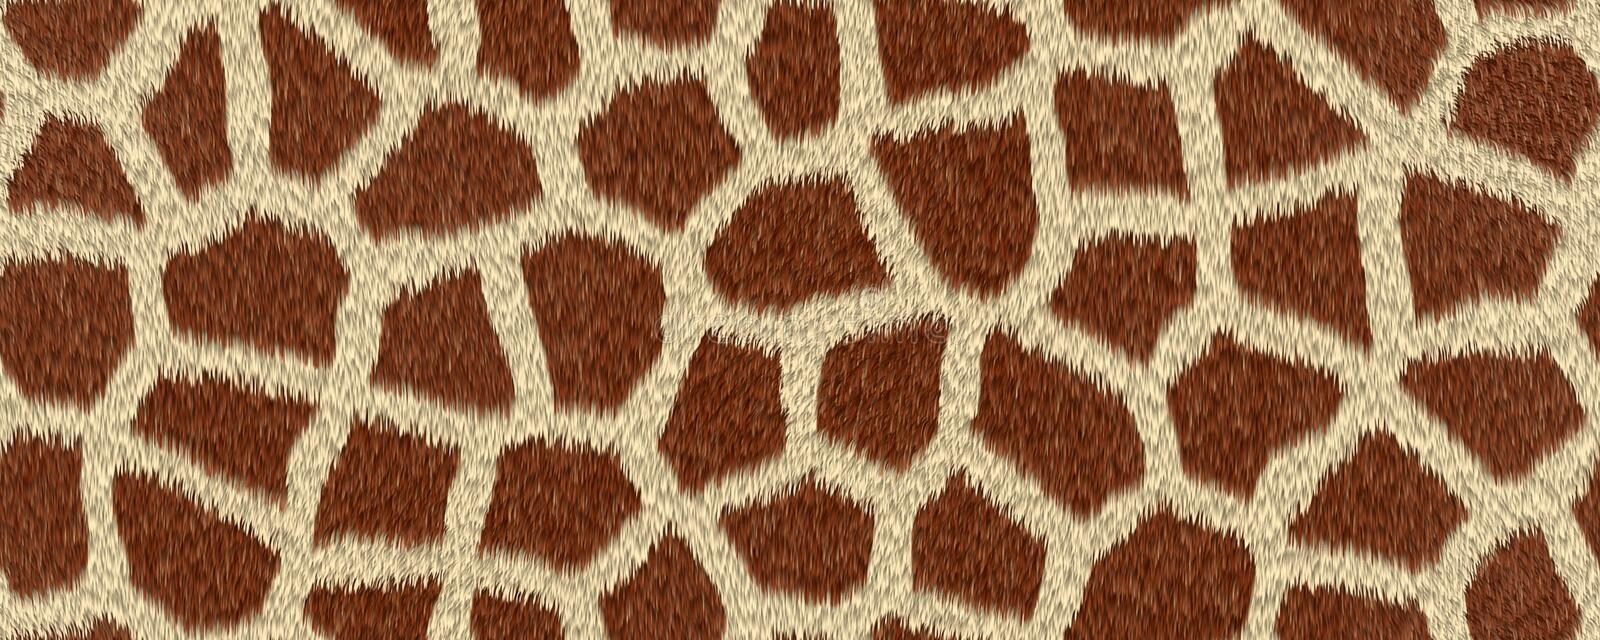 Giraffe skin monochrome pattern. Animal fur background. vector illustration